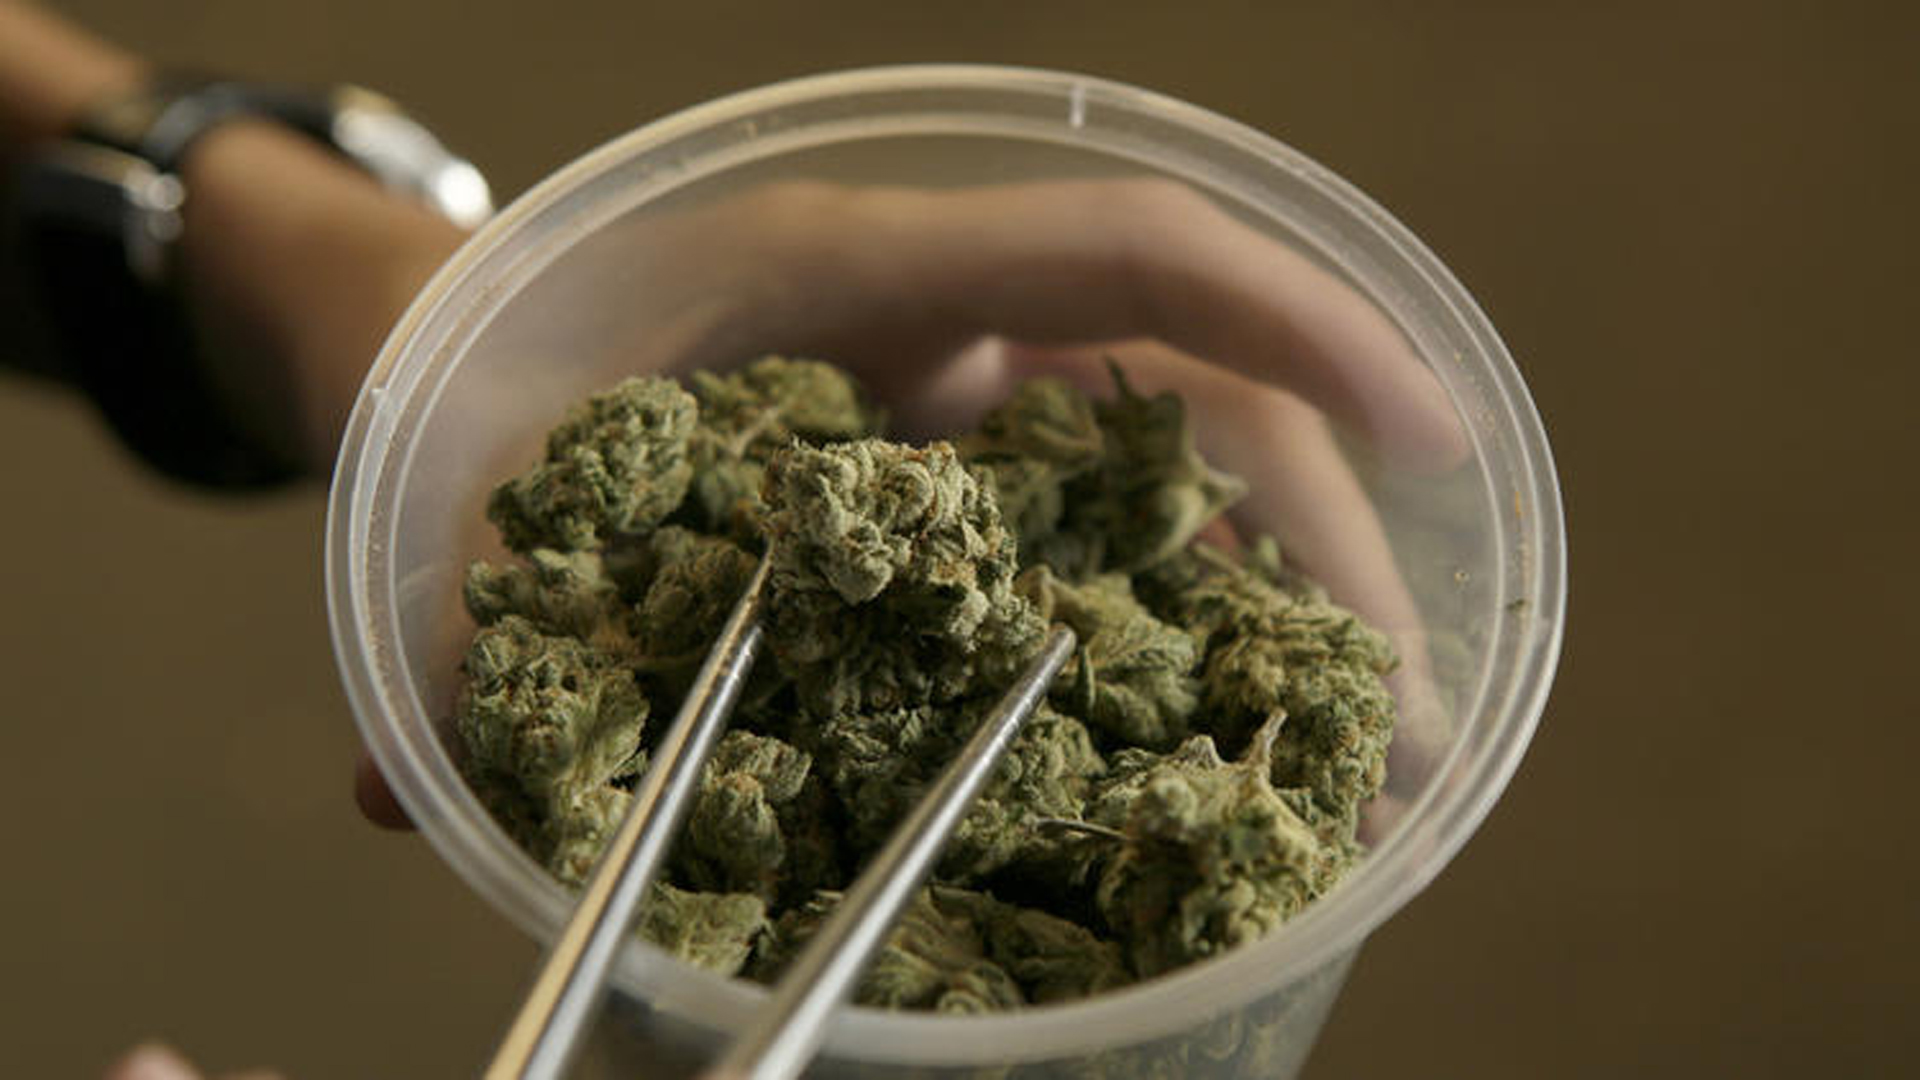 Marijuana is seen in this file photo. (Credit: Irfan Khan / Los Angeles Times